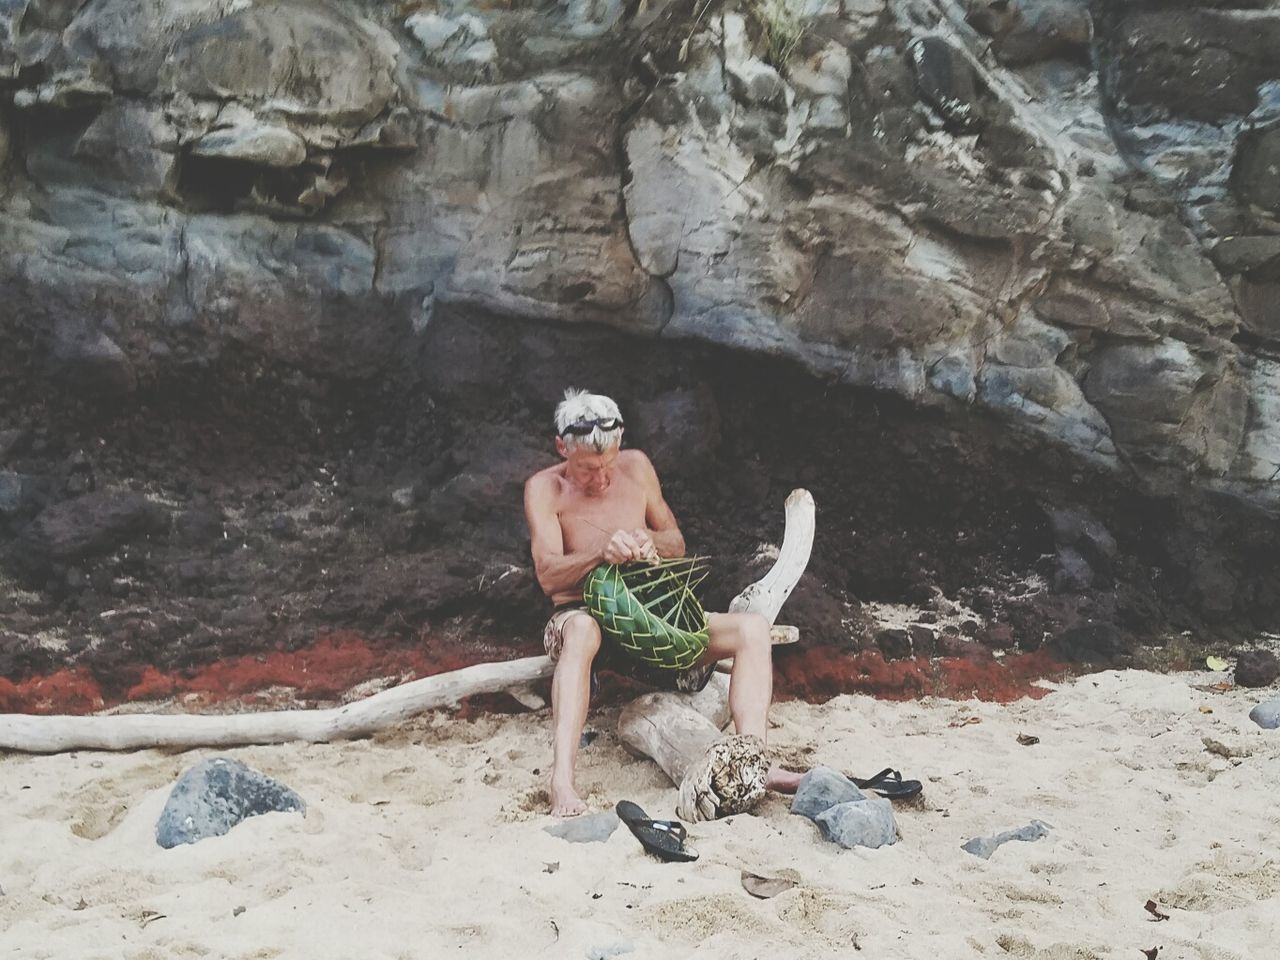 Maui, Hawaii Basket Weaving One Person Sand Outdoors Man ArtWork Crafts TALENTED PEOPLE Relaxing Time Hobbyist Old Man Of The Sea... Day Cliffside Samsung Galaxy S7 Edge Hello World